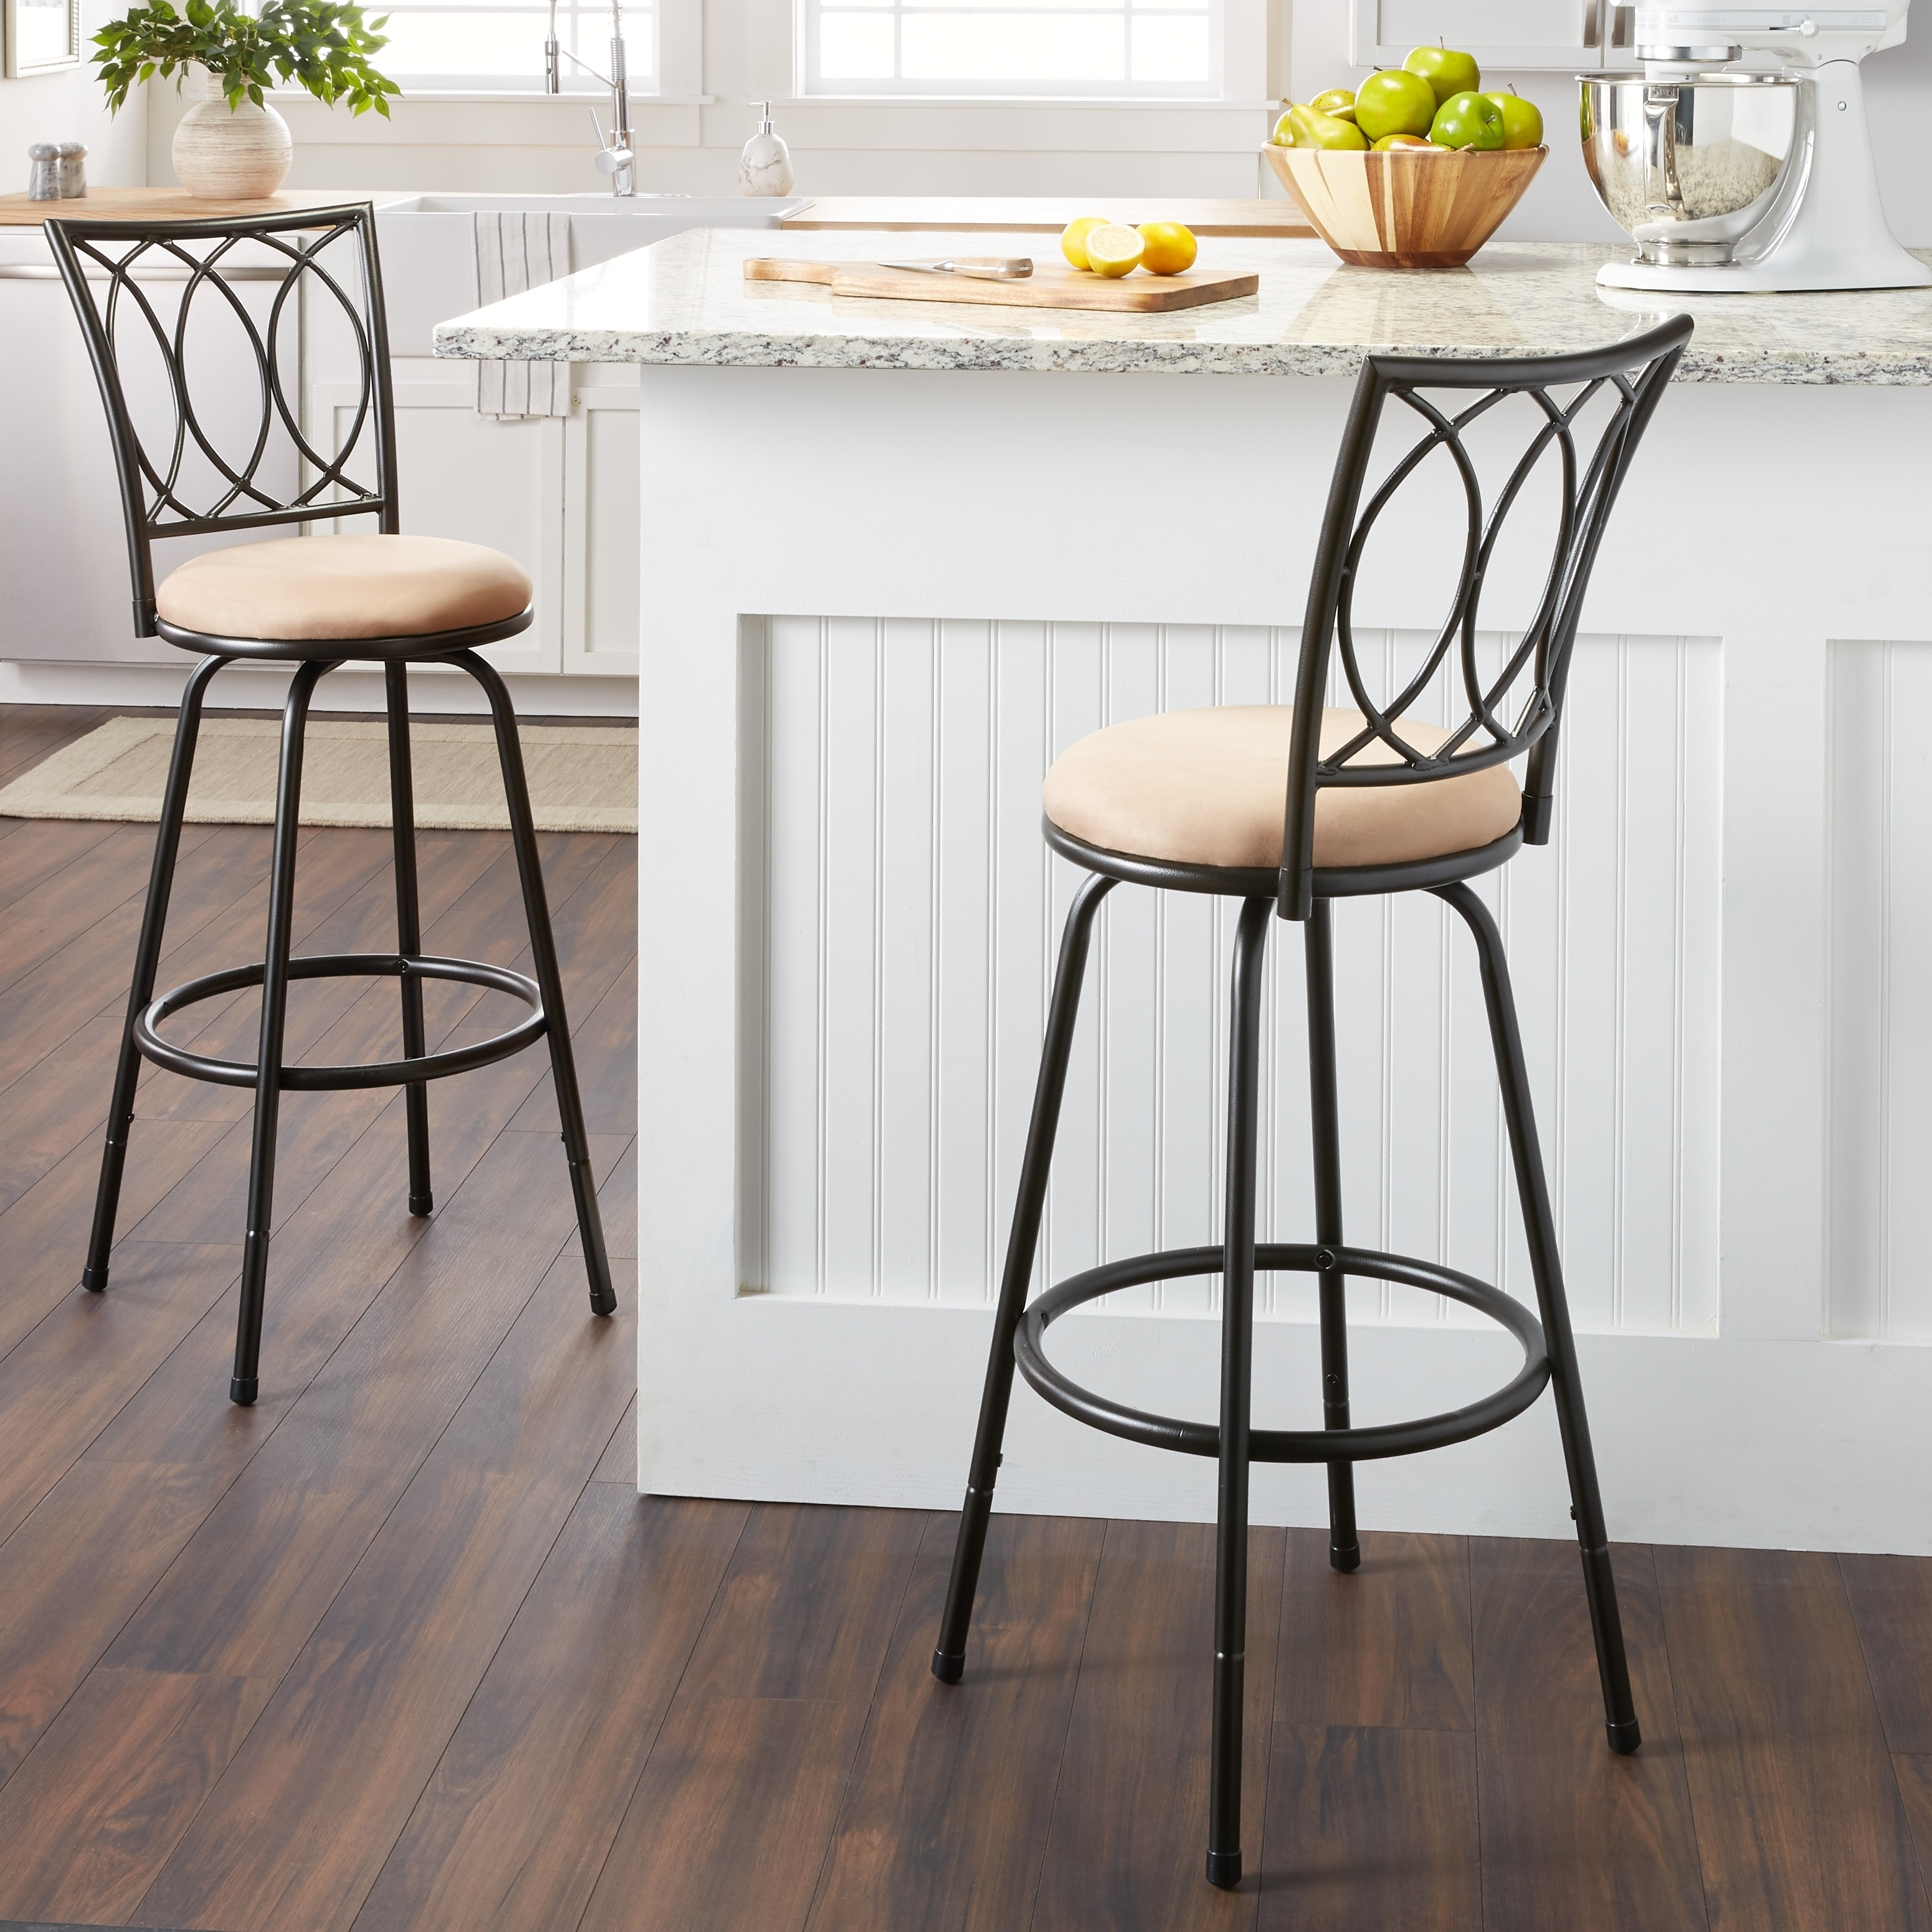 Bar Stool With Back Cushions Round Dinning Chair Outdoor